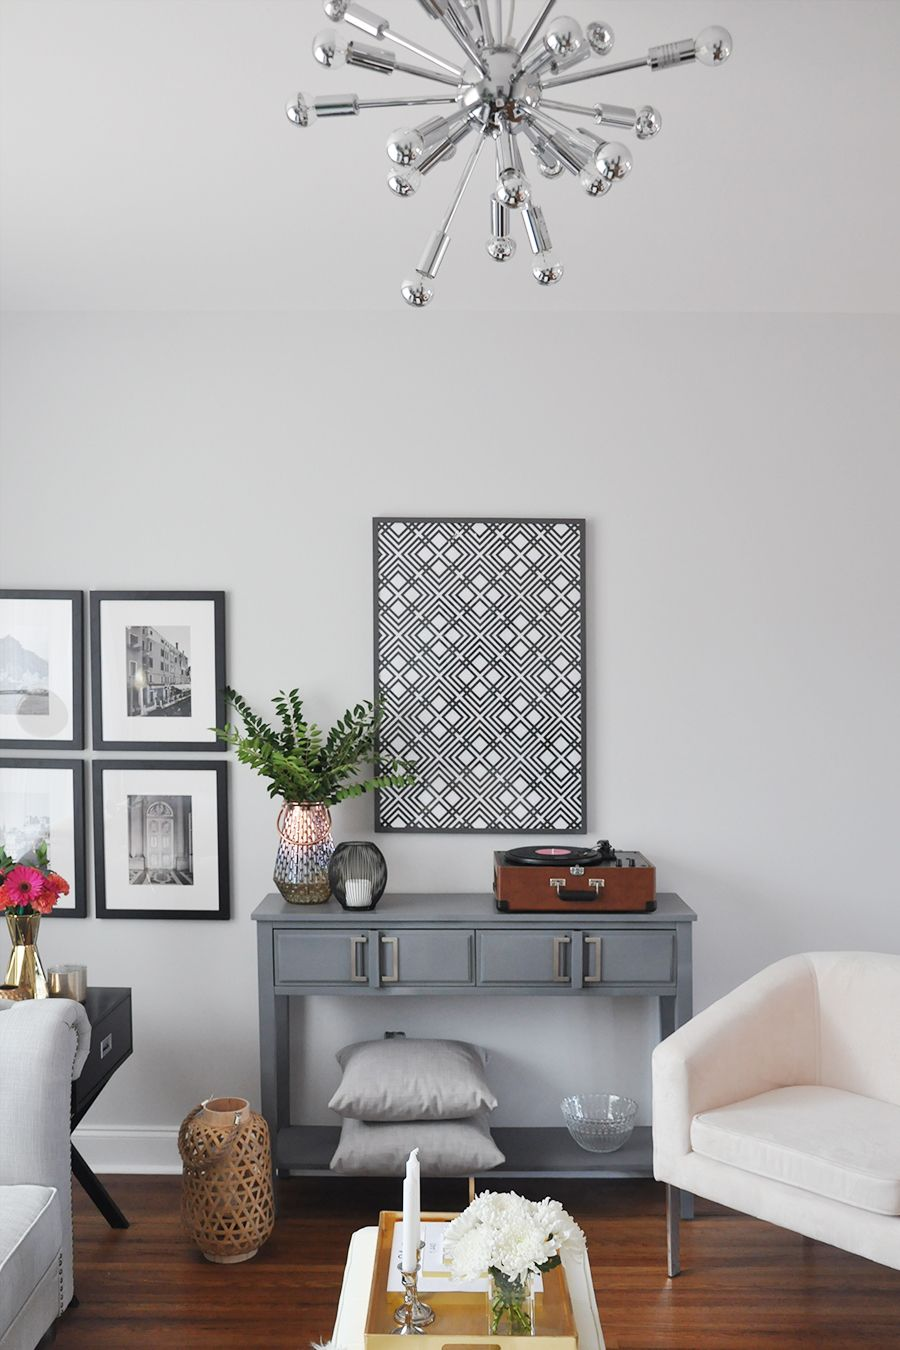 One Room Challenge, Week 6: Living Room Tour and Sources | Challenge ...